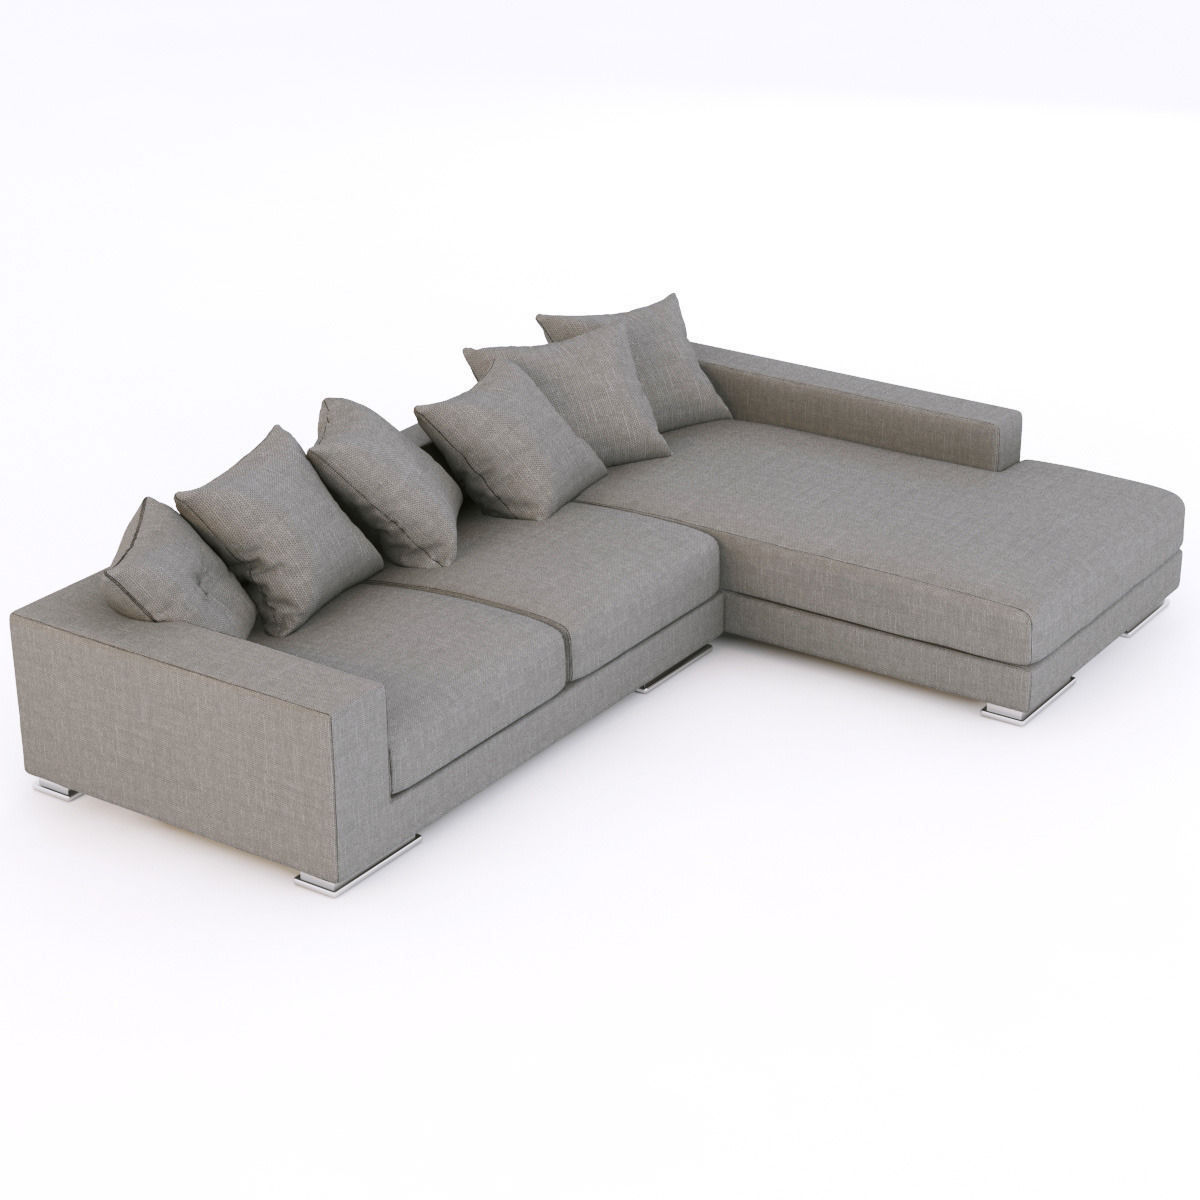 corner sofa furniture 3D model | CGTrader